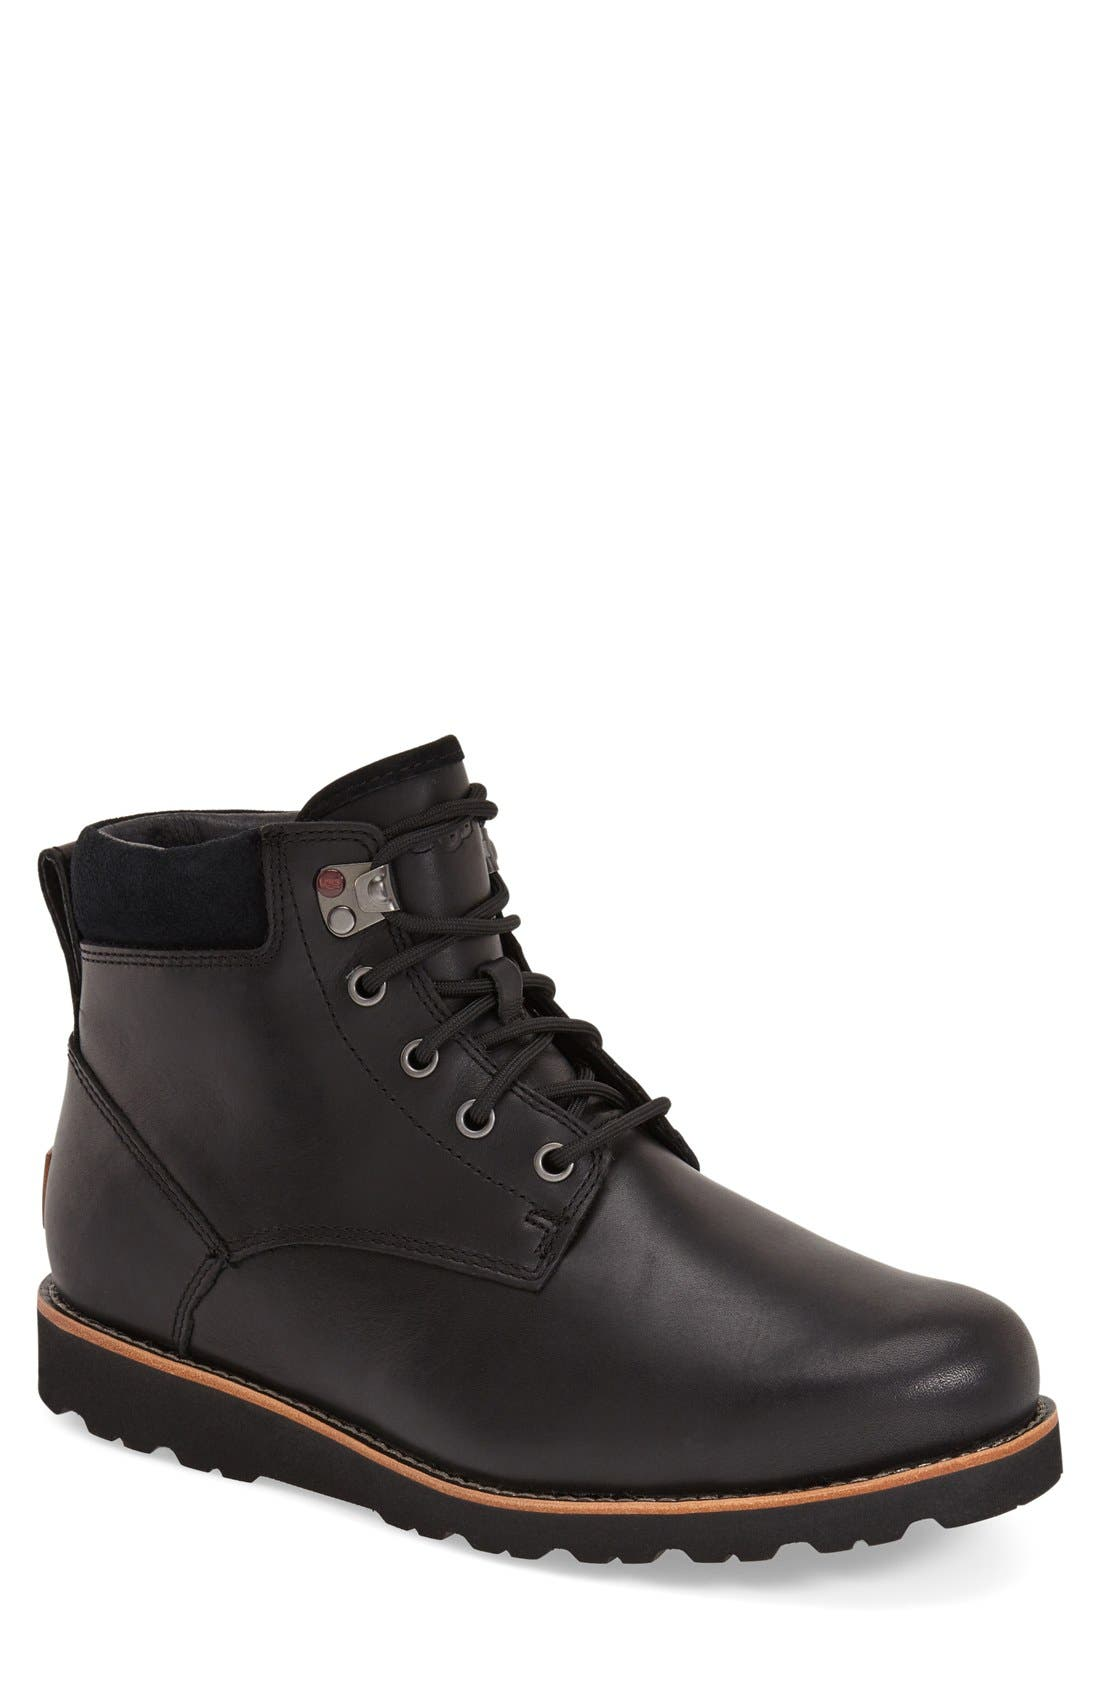 Alternate Image 1 Selected - UGG® Seton Waterproof Chukka Boot (Men)